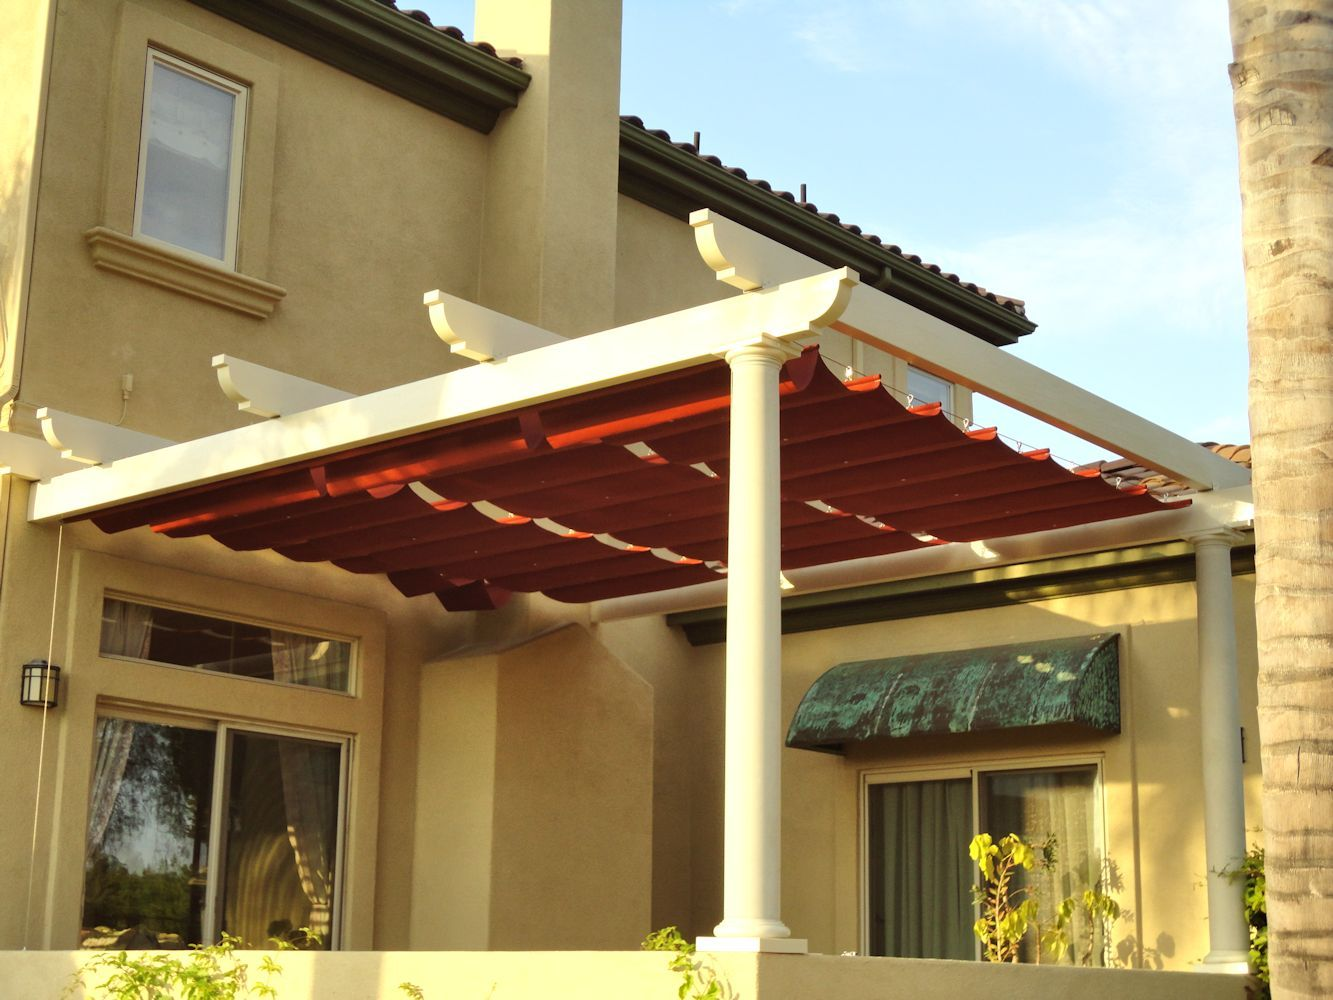 Slide Wire Cable Awnings By Superior Awning Let The Sun Shine Patio Canopy Canopy Outdoor Backyard Canopy